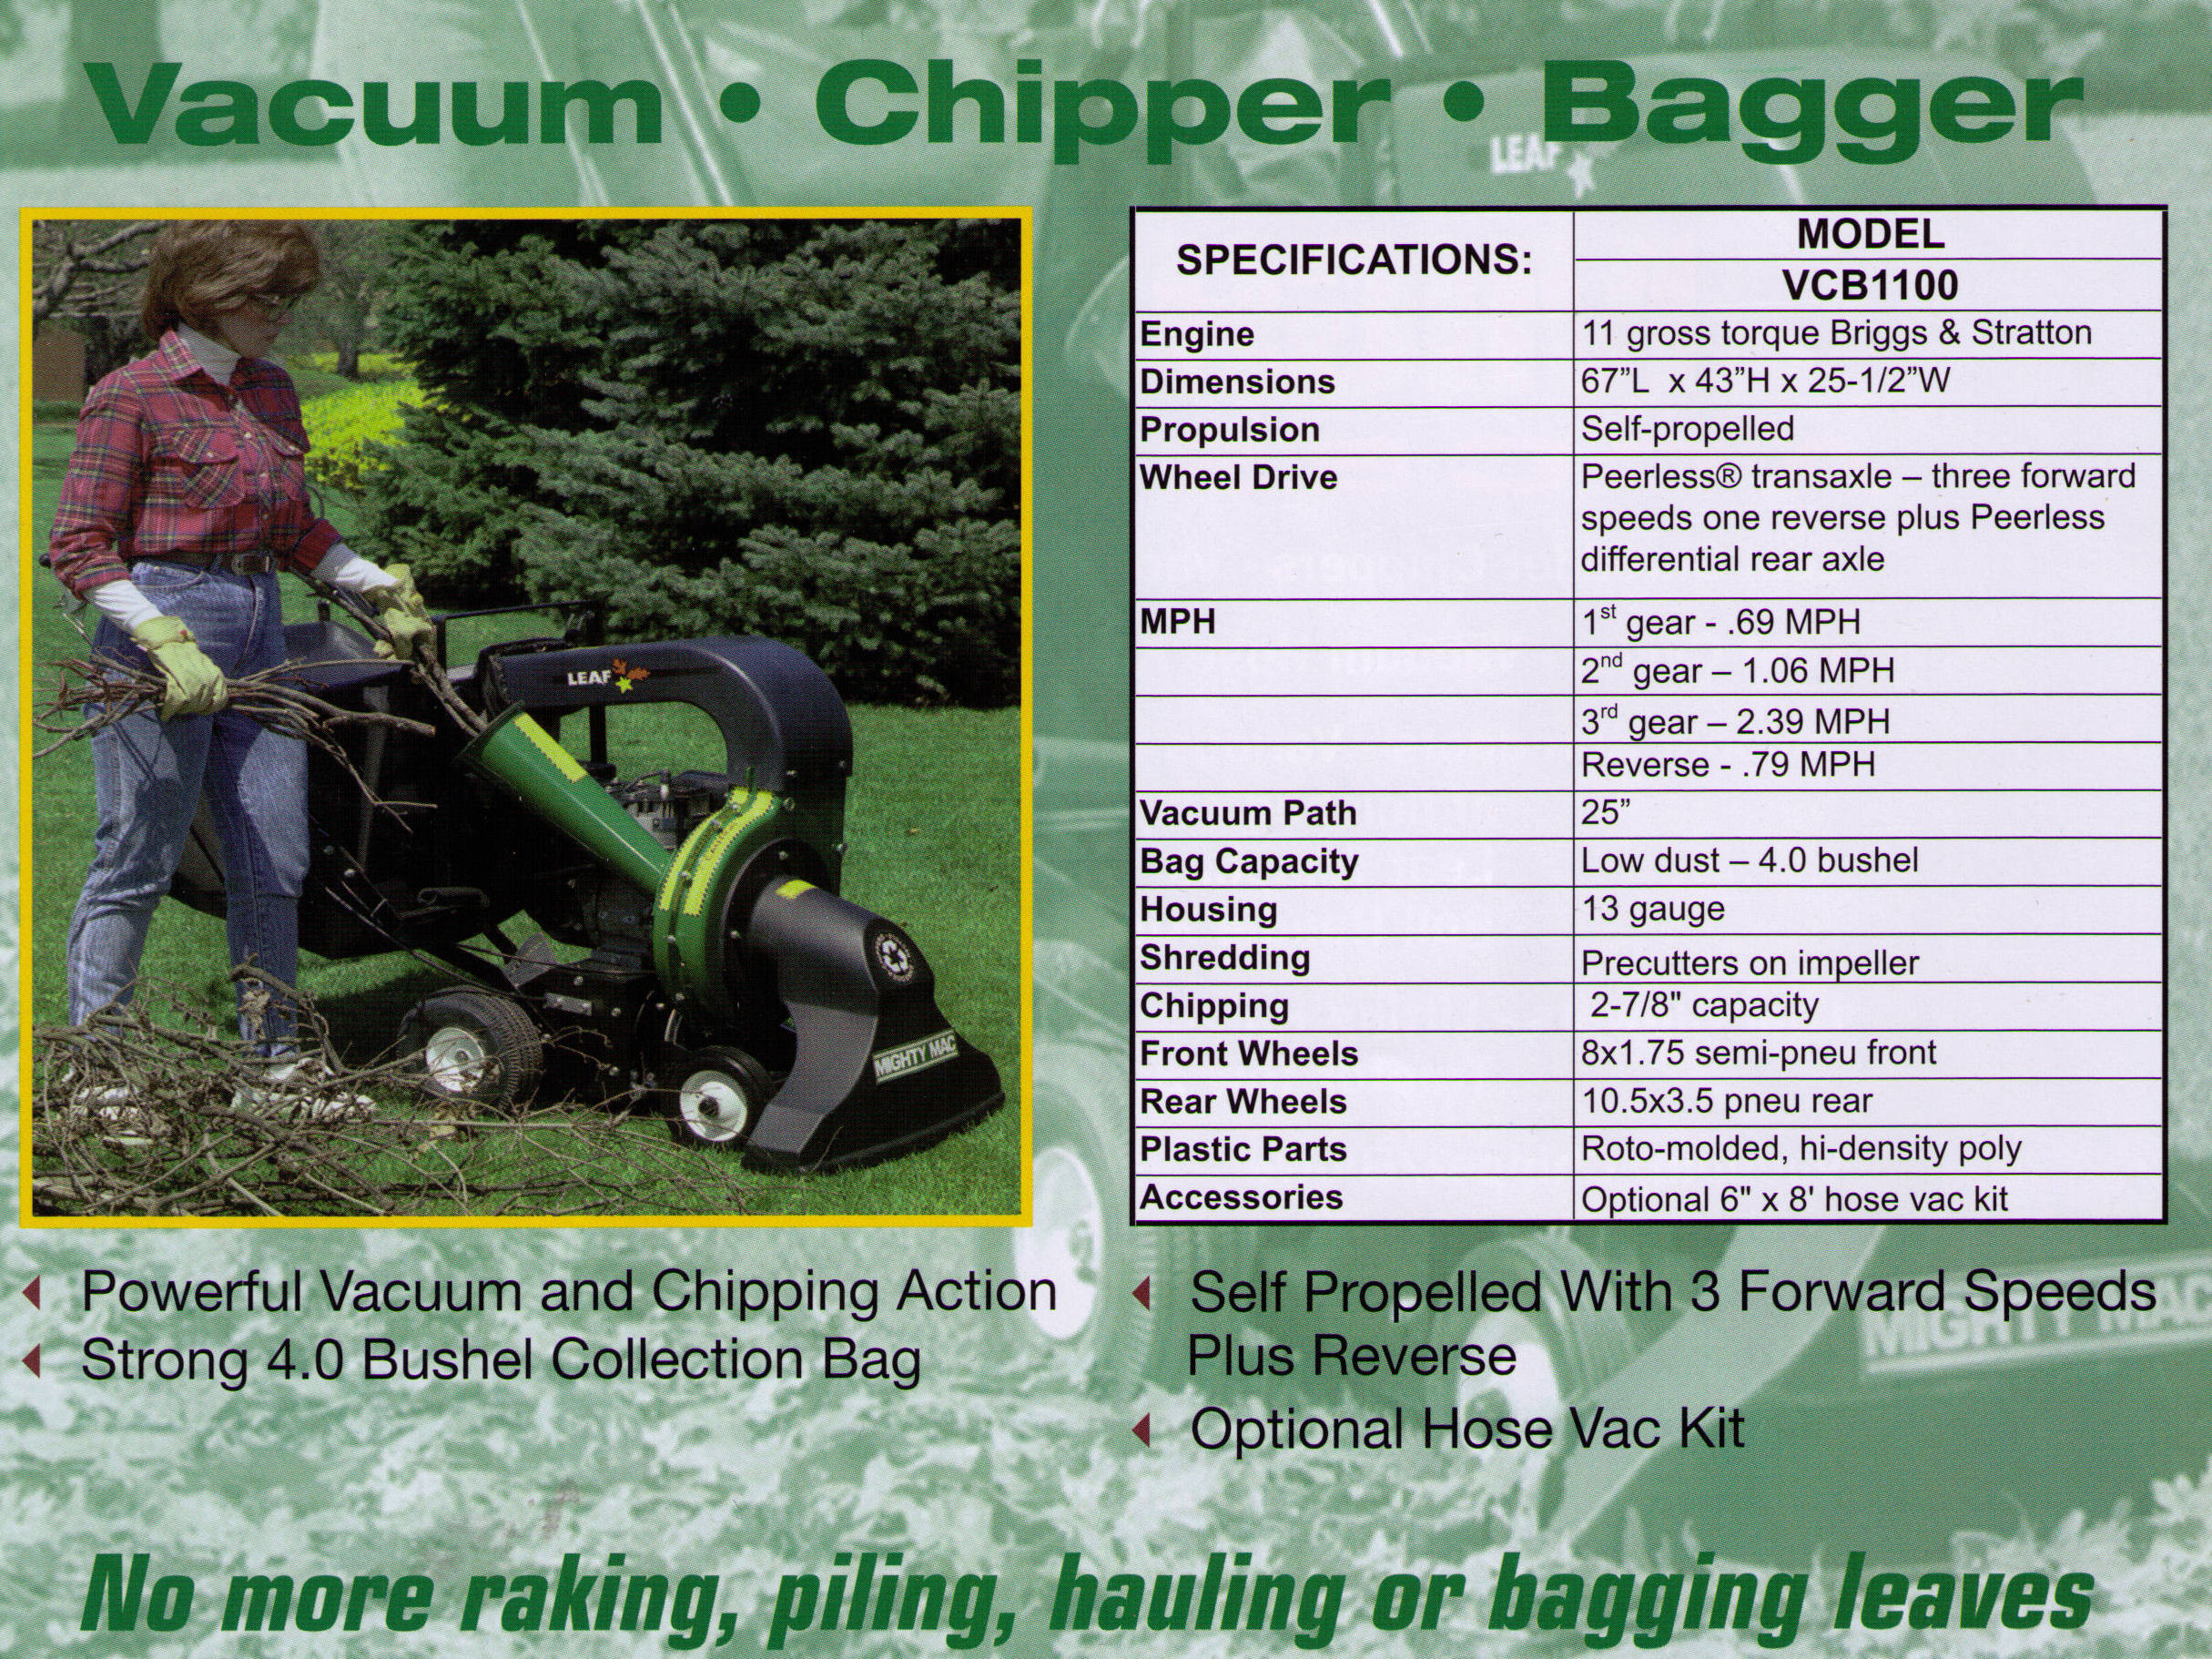 Walk Behind Chipper Bagger Vacuum, Reduces Limbs, Leaves, And Debris By Up To 8 To 1